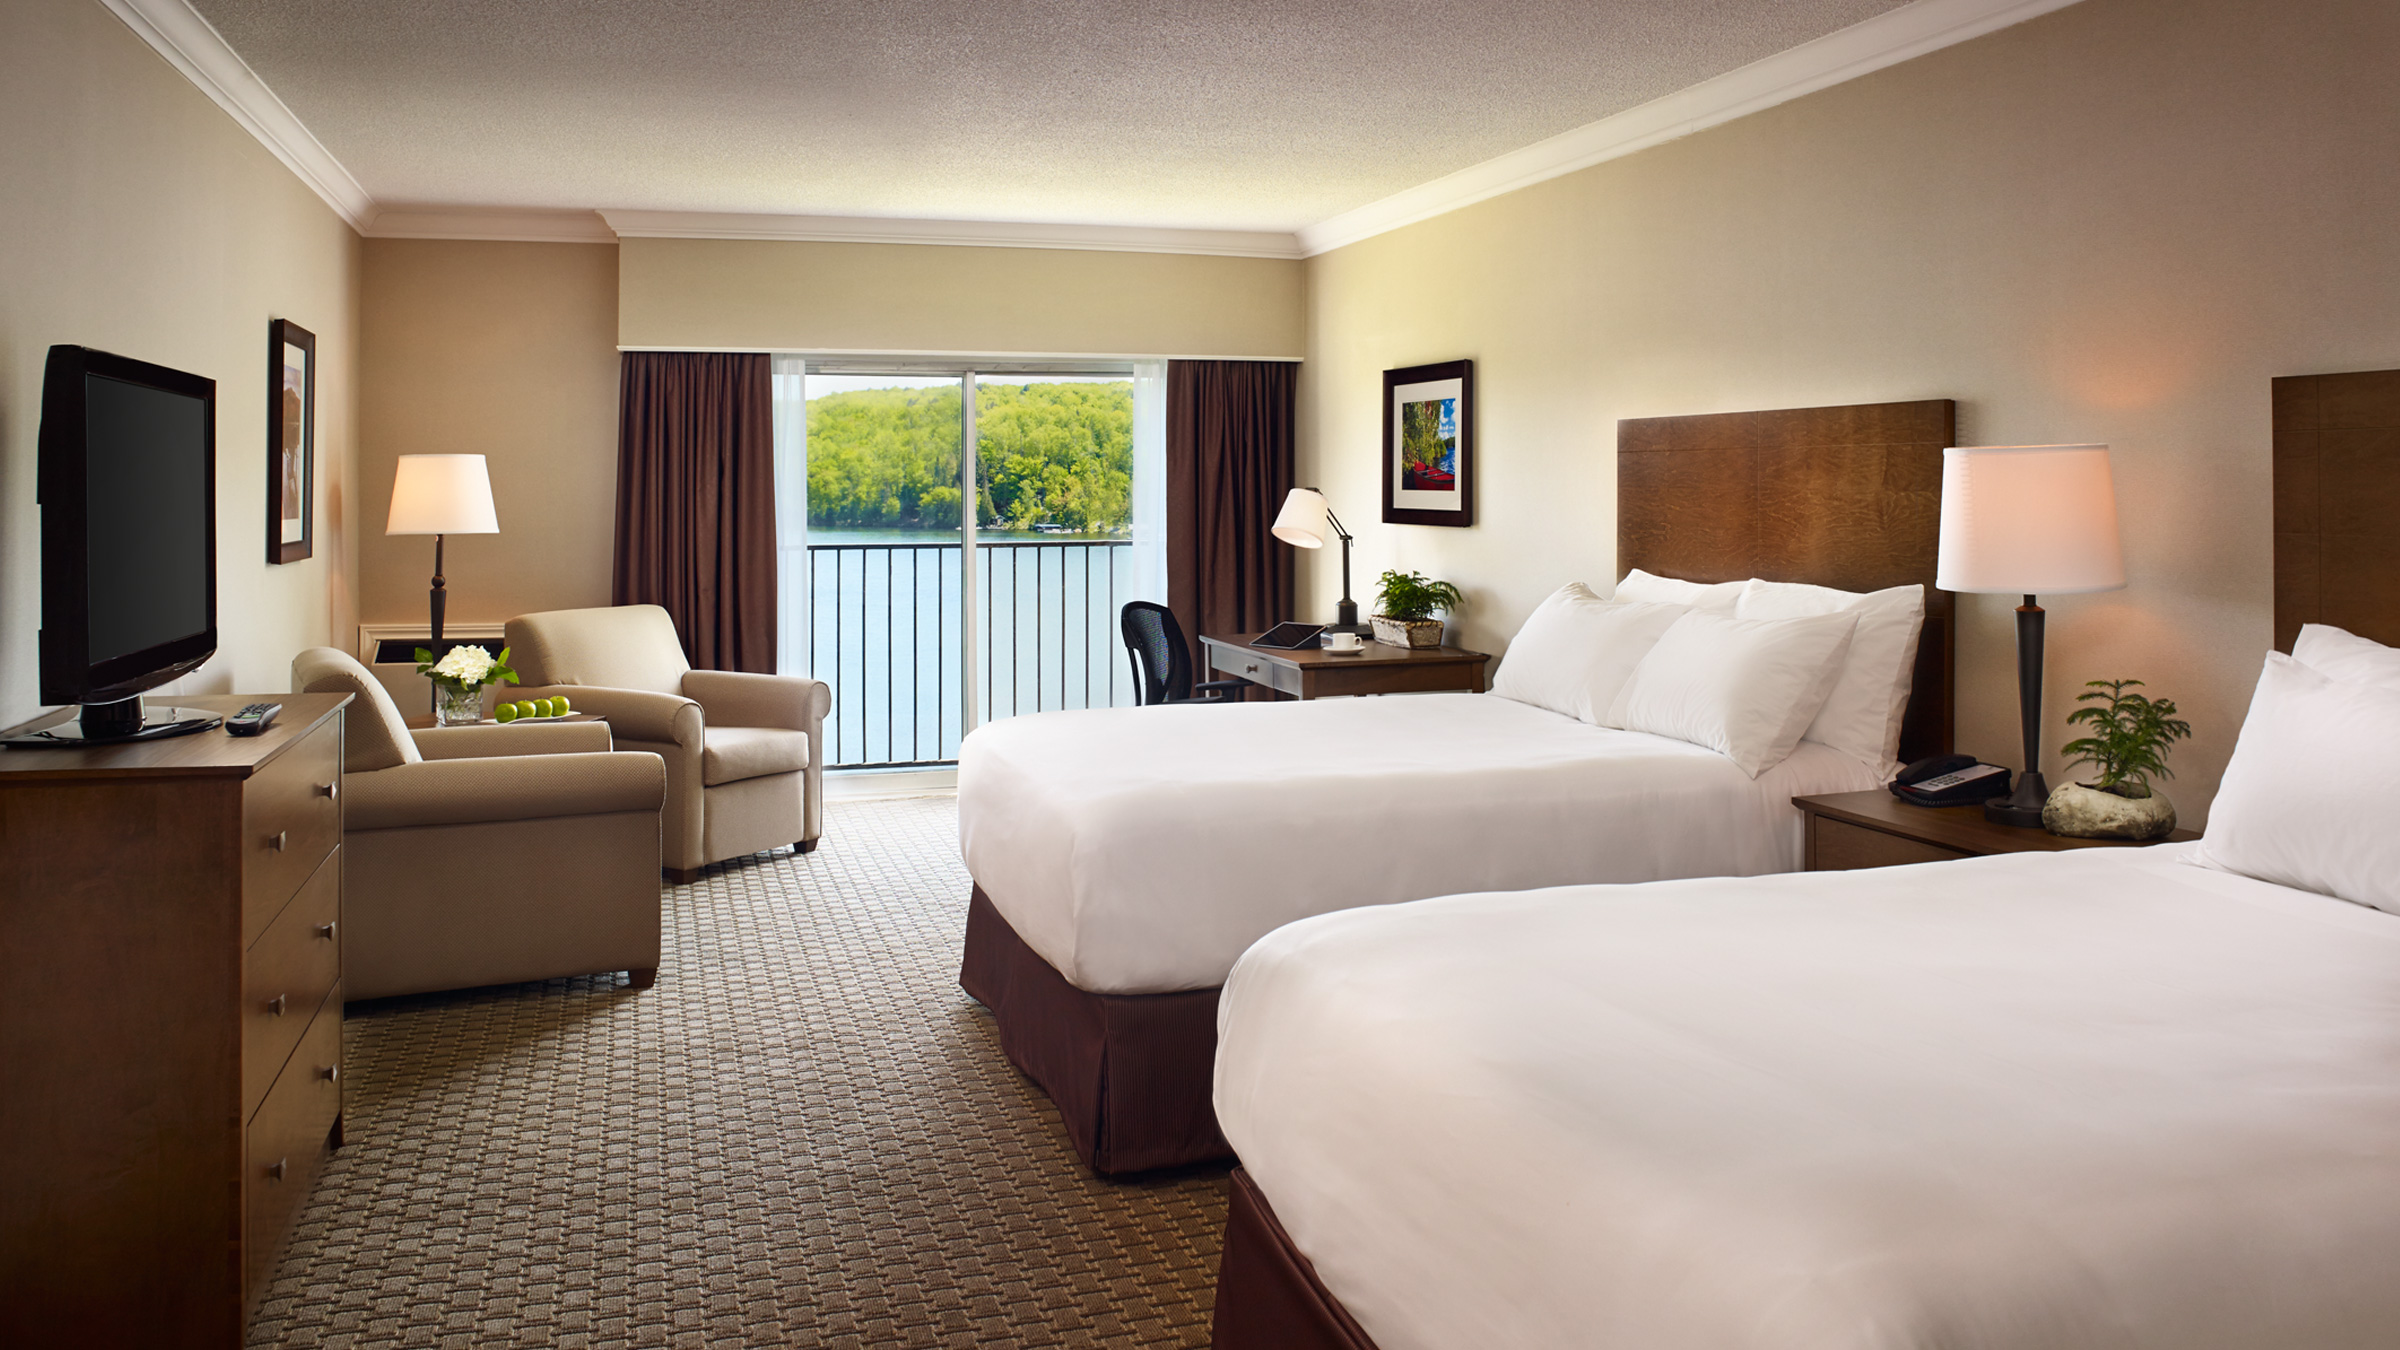 Accommodation Lakeside Rooms Deerhurst Resort Muskoka